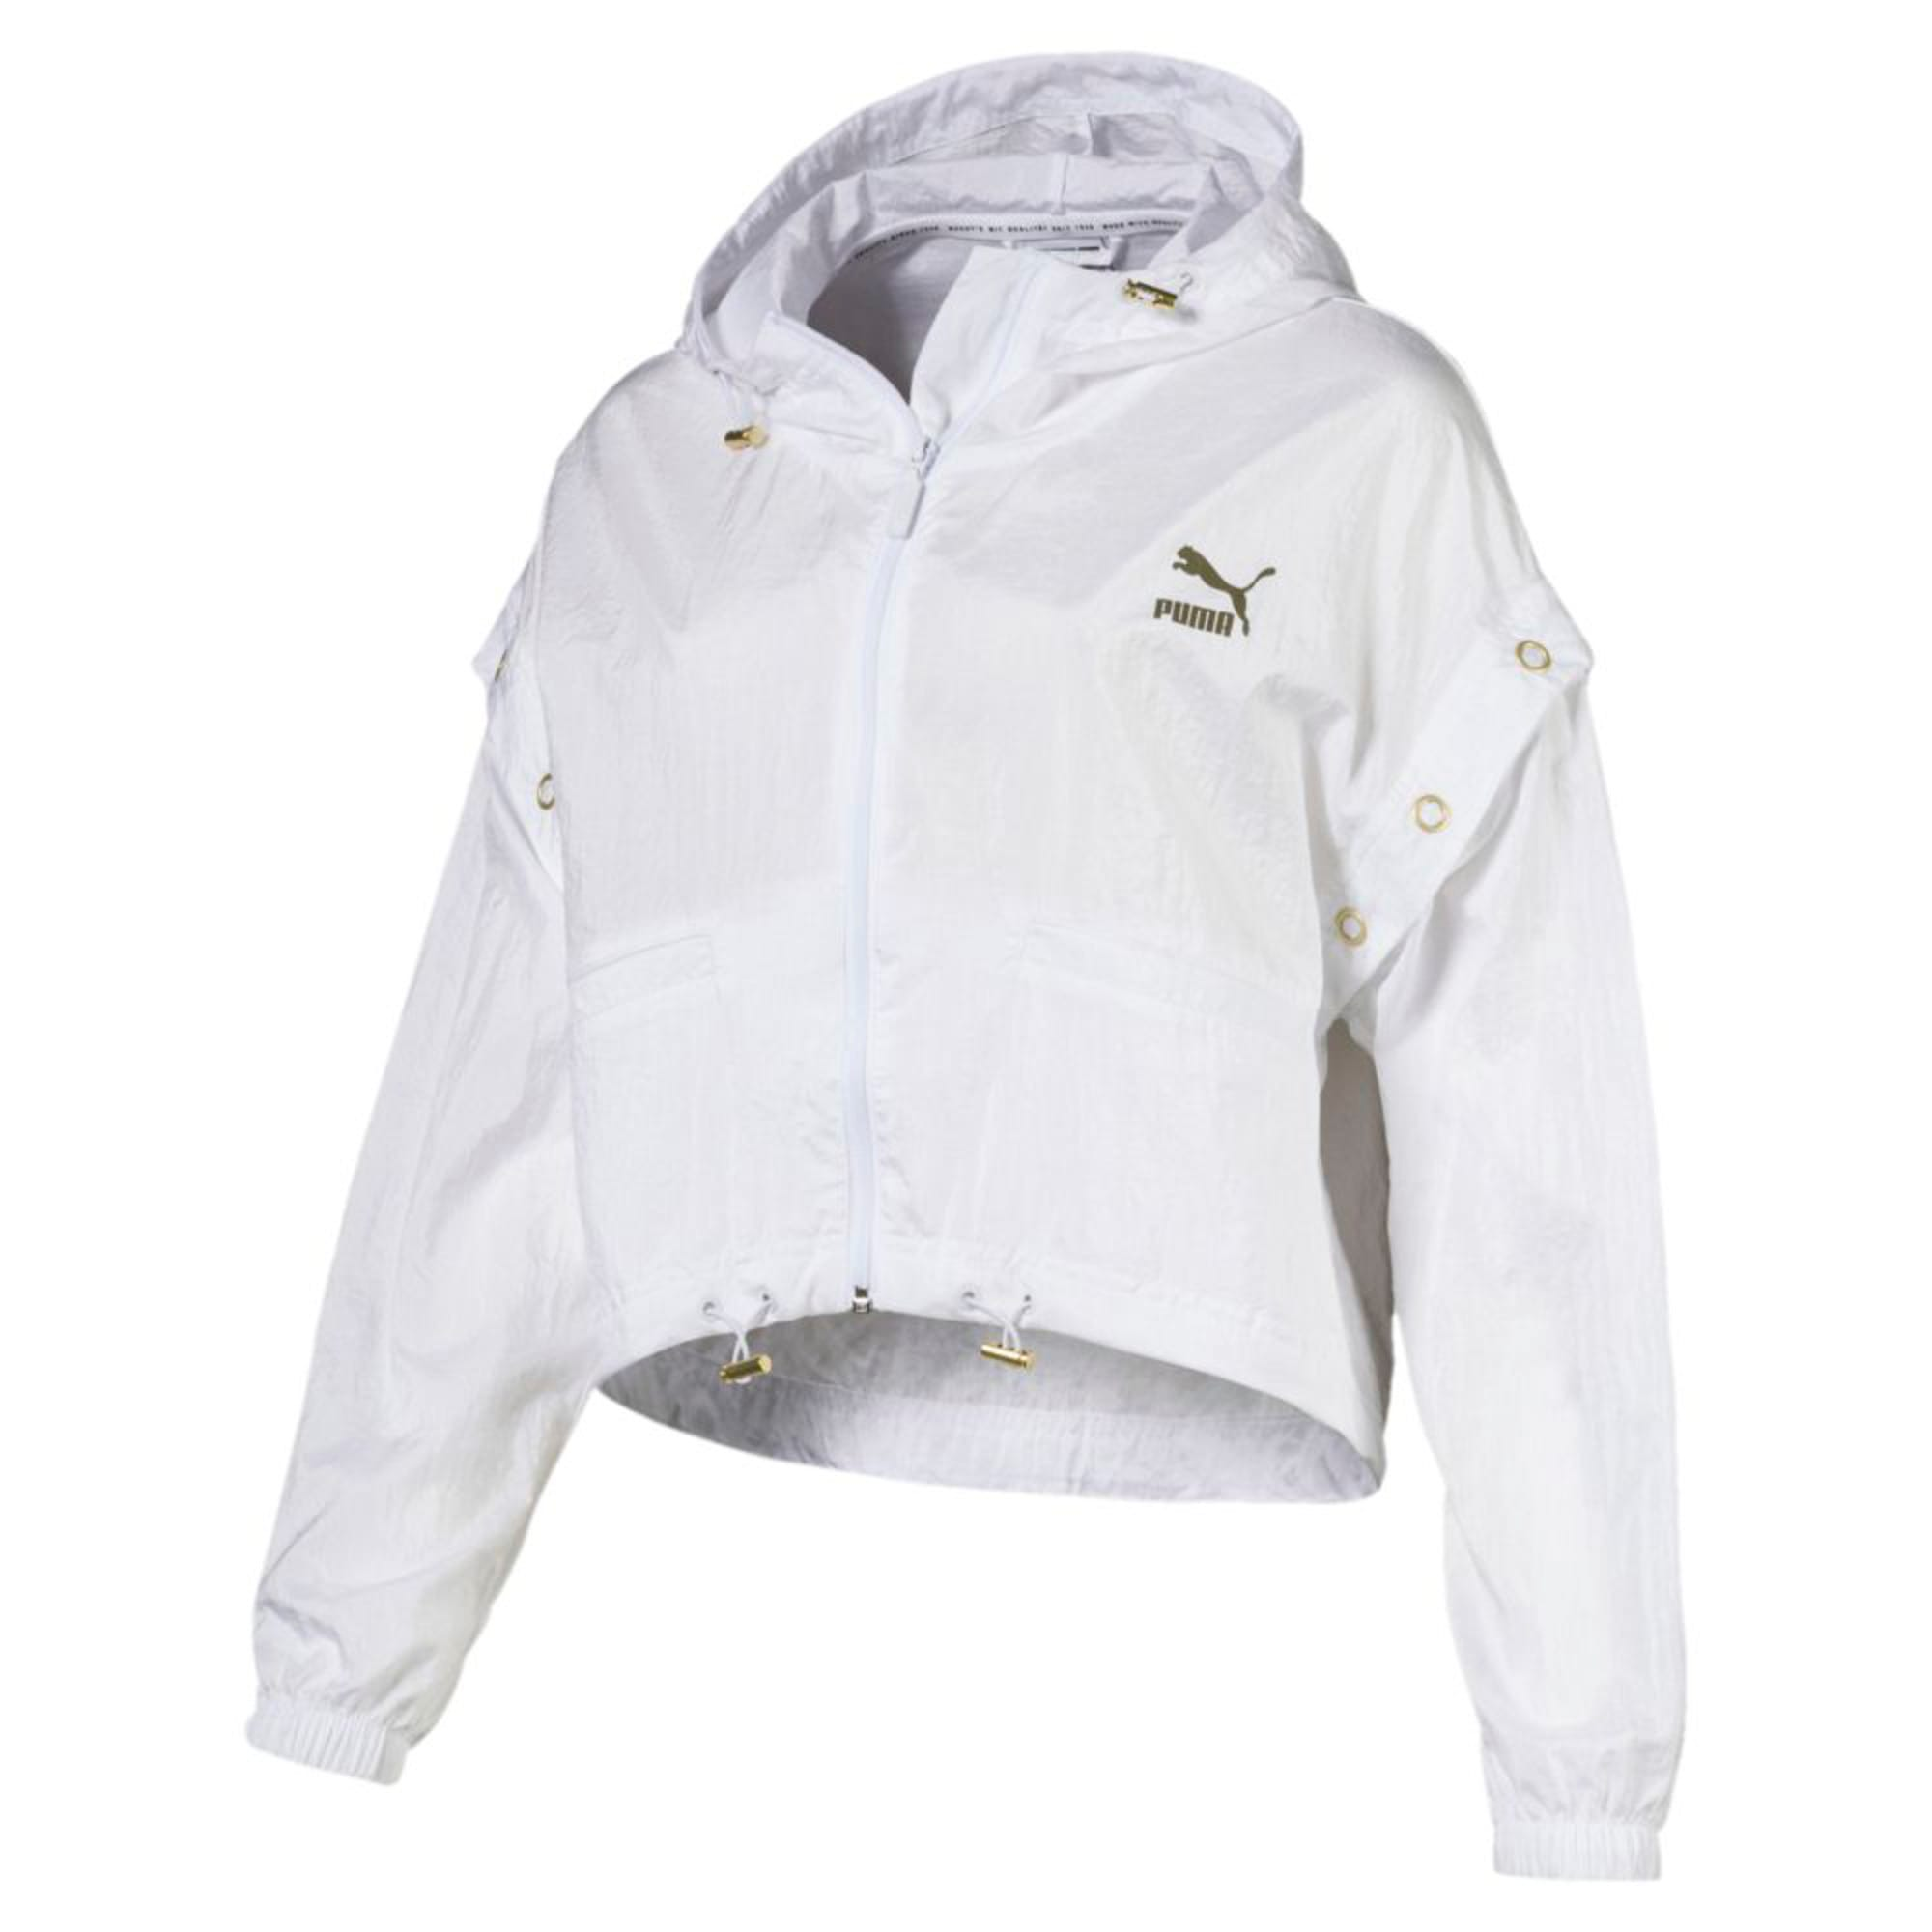 Thumbnail 4 of Retro Windrunner Zip-Up Women's Hooded Jacket, Puma White, medium-IND